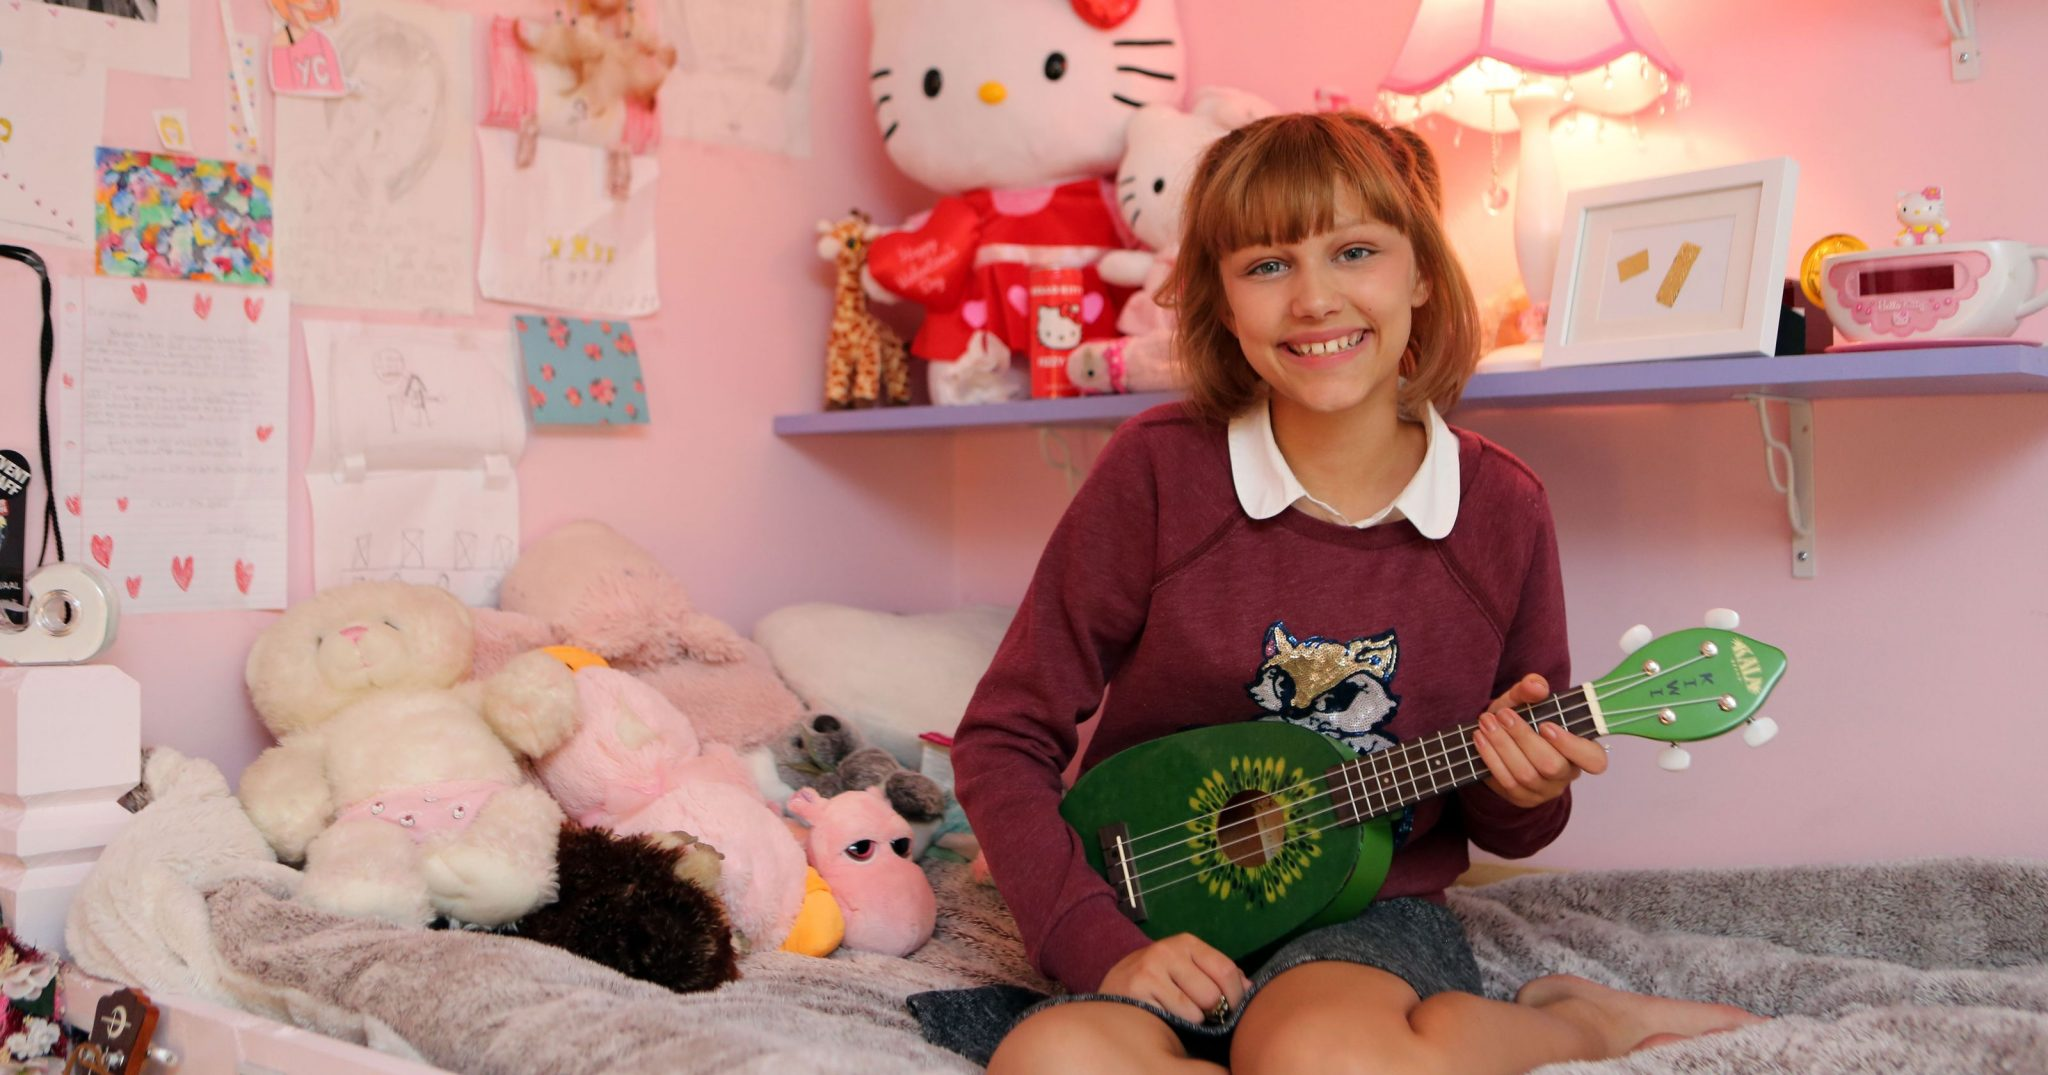 10 Cover Lagu Terbaik Dari Grace VanderWaal 'The Next Taylor Swift'